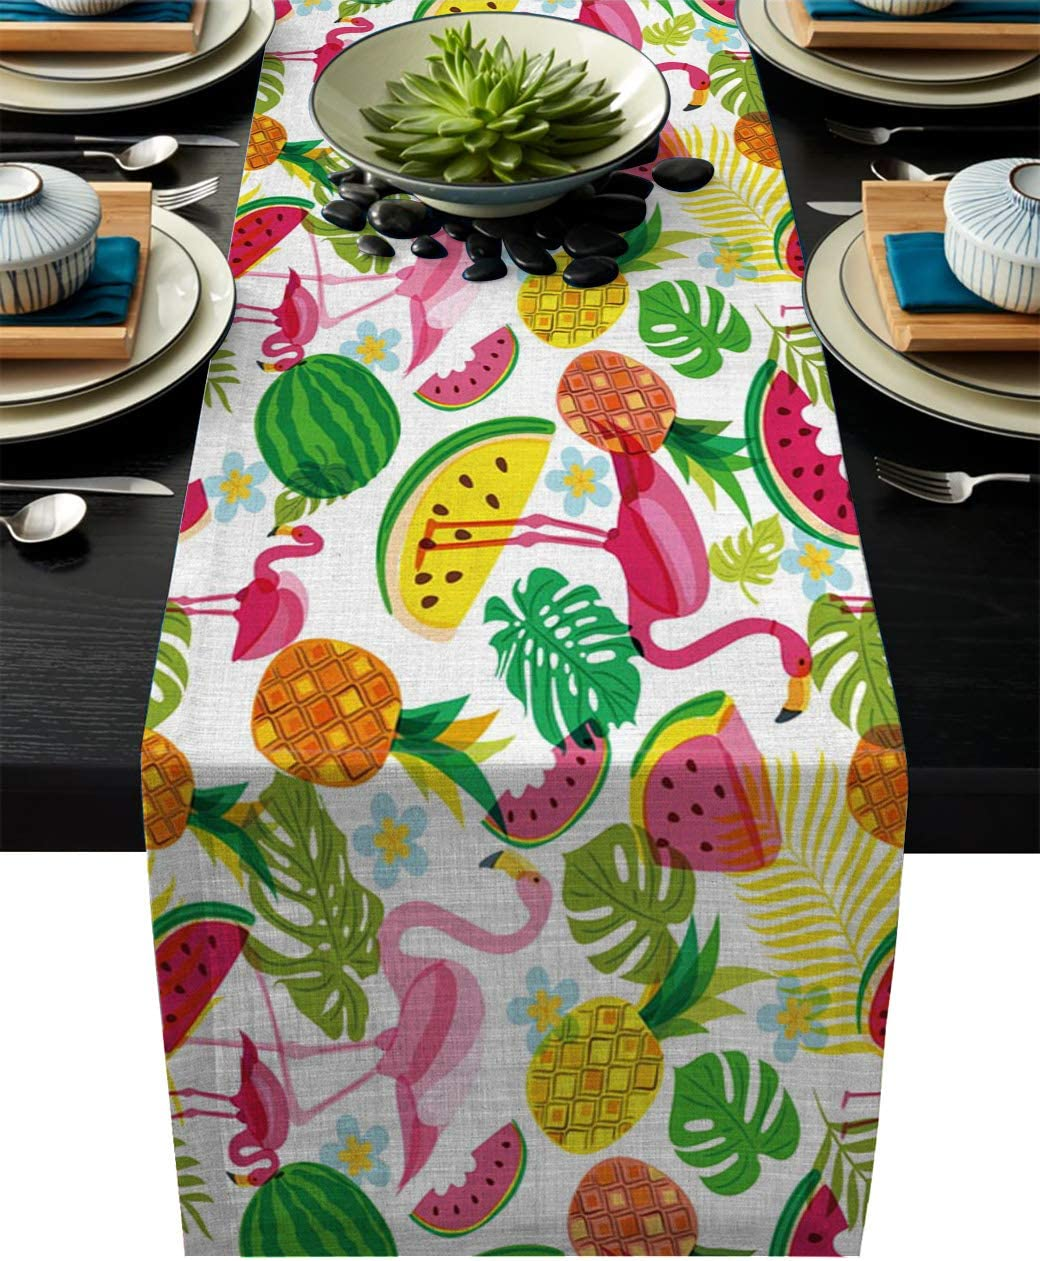 Pink Flamingo Table Runner Flock Of Flamingos by michaelzindell Bright Tropical  Summer Jungle Cotton Sateen Table Runner by Spoonflower